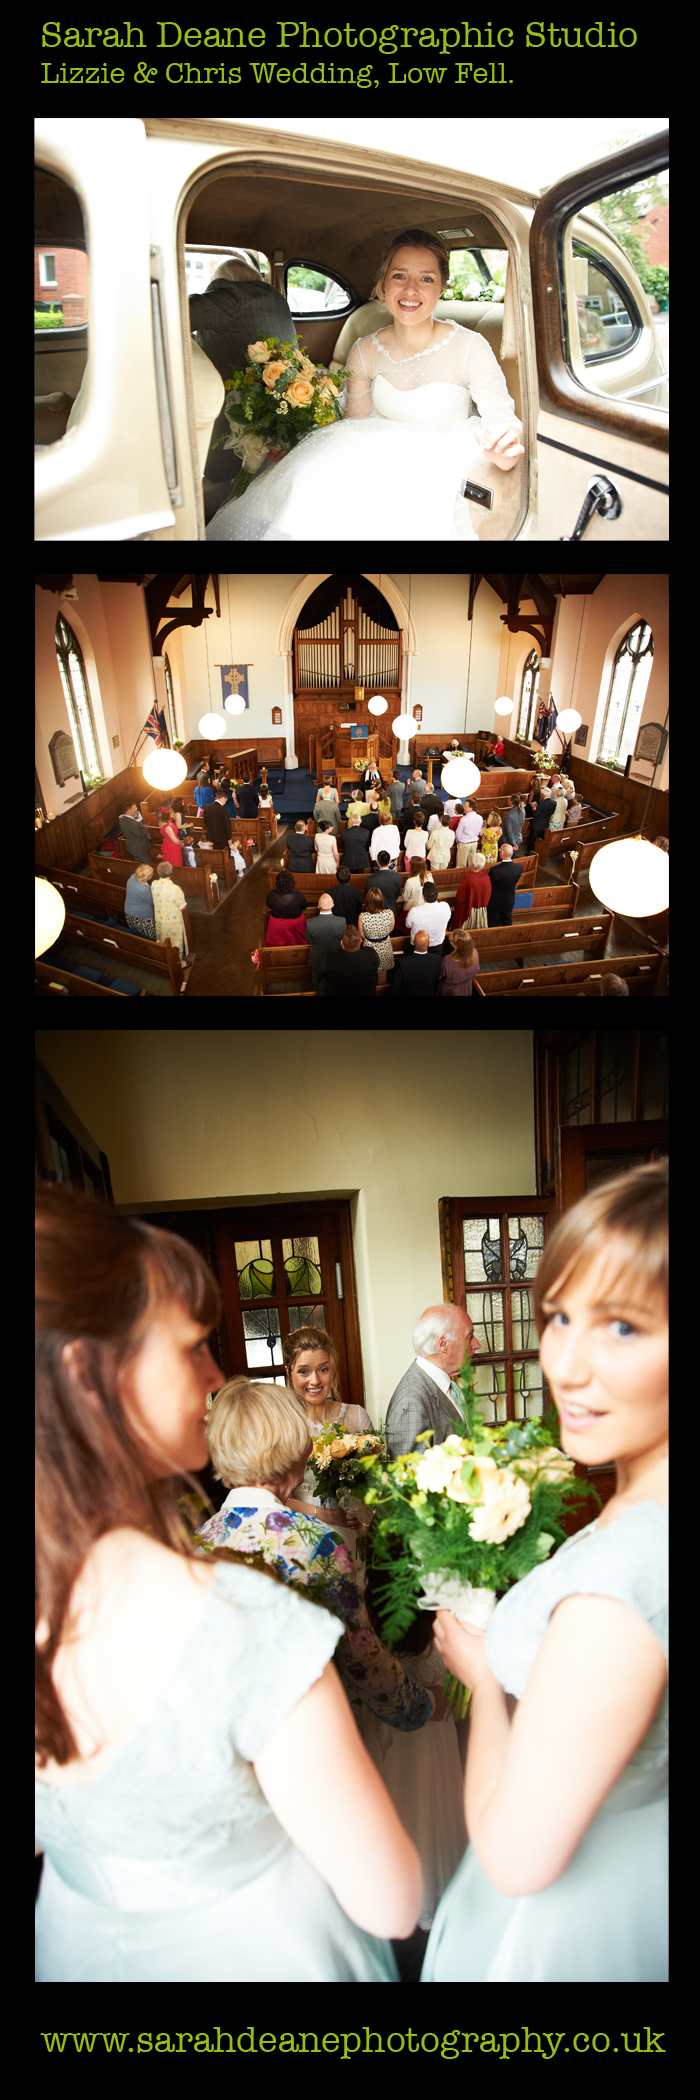 1, lizzie and chris wedding photos at low fell church, gateshead